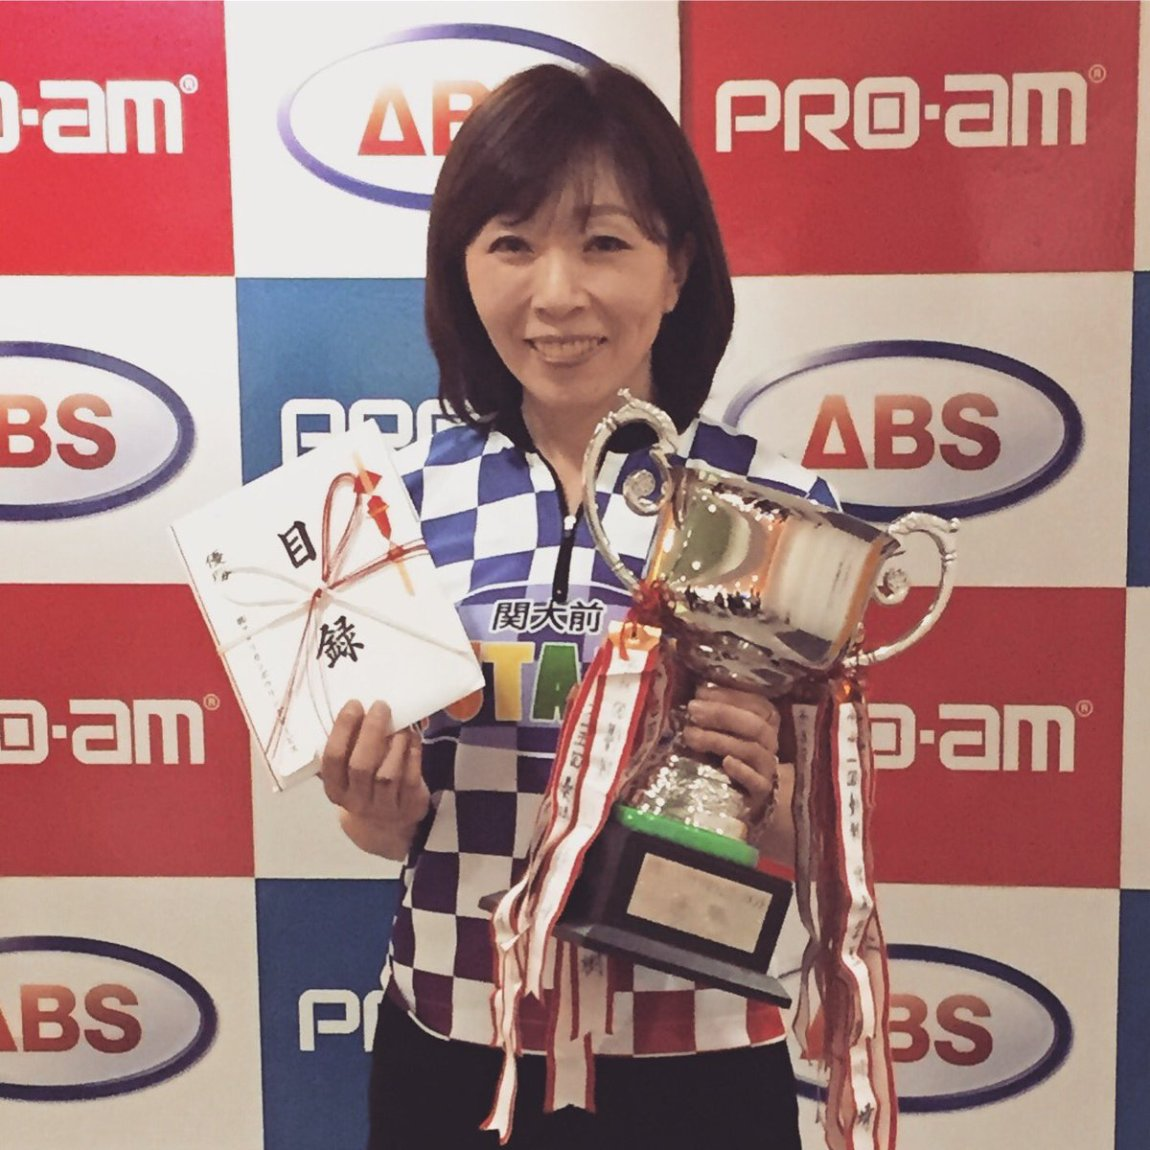 test Twitter Media - Congratulations to Ms. Kimie Takebe, winner of the 18th Annual ABS 300 Club Pro-Am!  She won throwing her Jackal Ghost! #GETMOTIVATED https://t.co/zxI1G2sGEJ